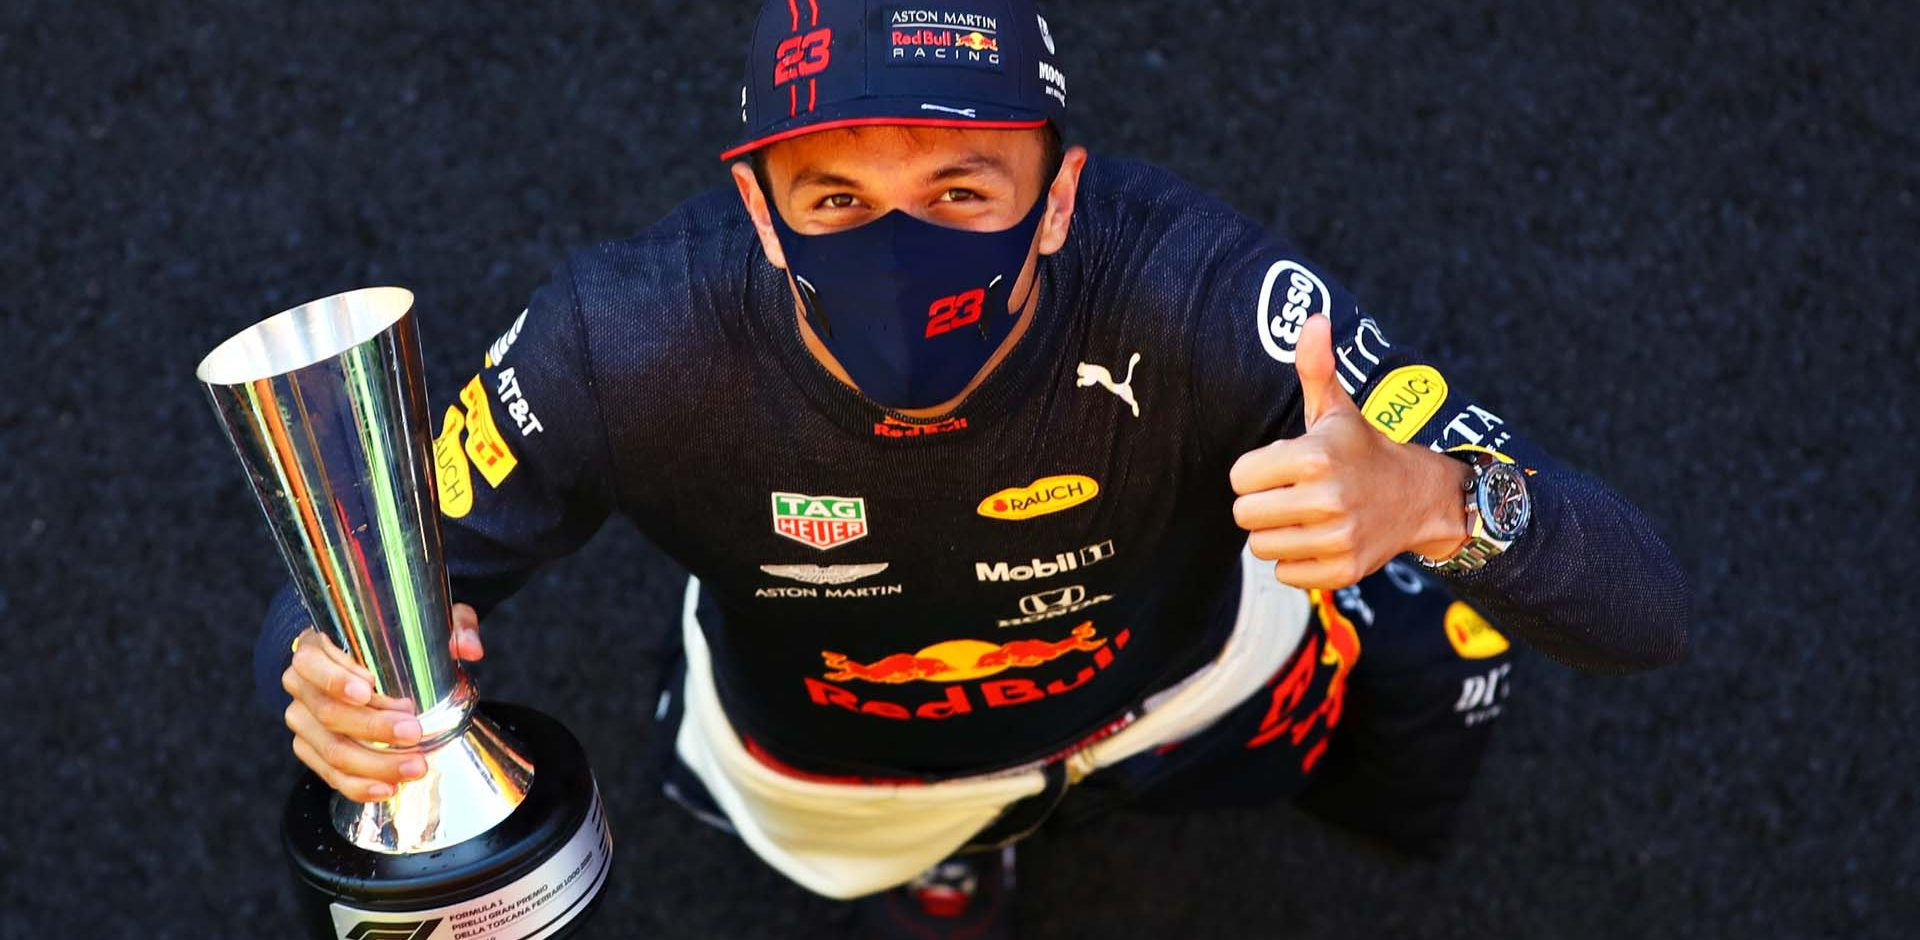 SCARPERIA, ITALY - SEPTEMBER 13: Third placed Alexander Albon of Thailand and Red Bull Racing celebrates after the F1 Grand Prix of Tuscany at Mugello Circuit on September 13, 2020 in Scarperia, Italy. (Photo by Mark Thompson/Getty Images)